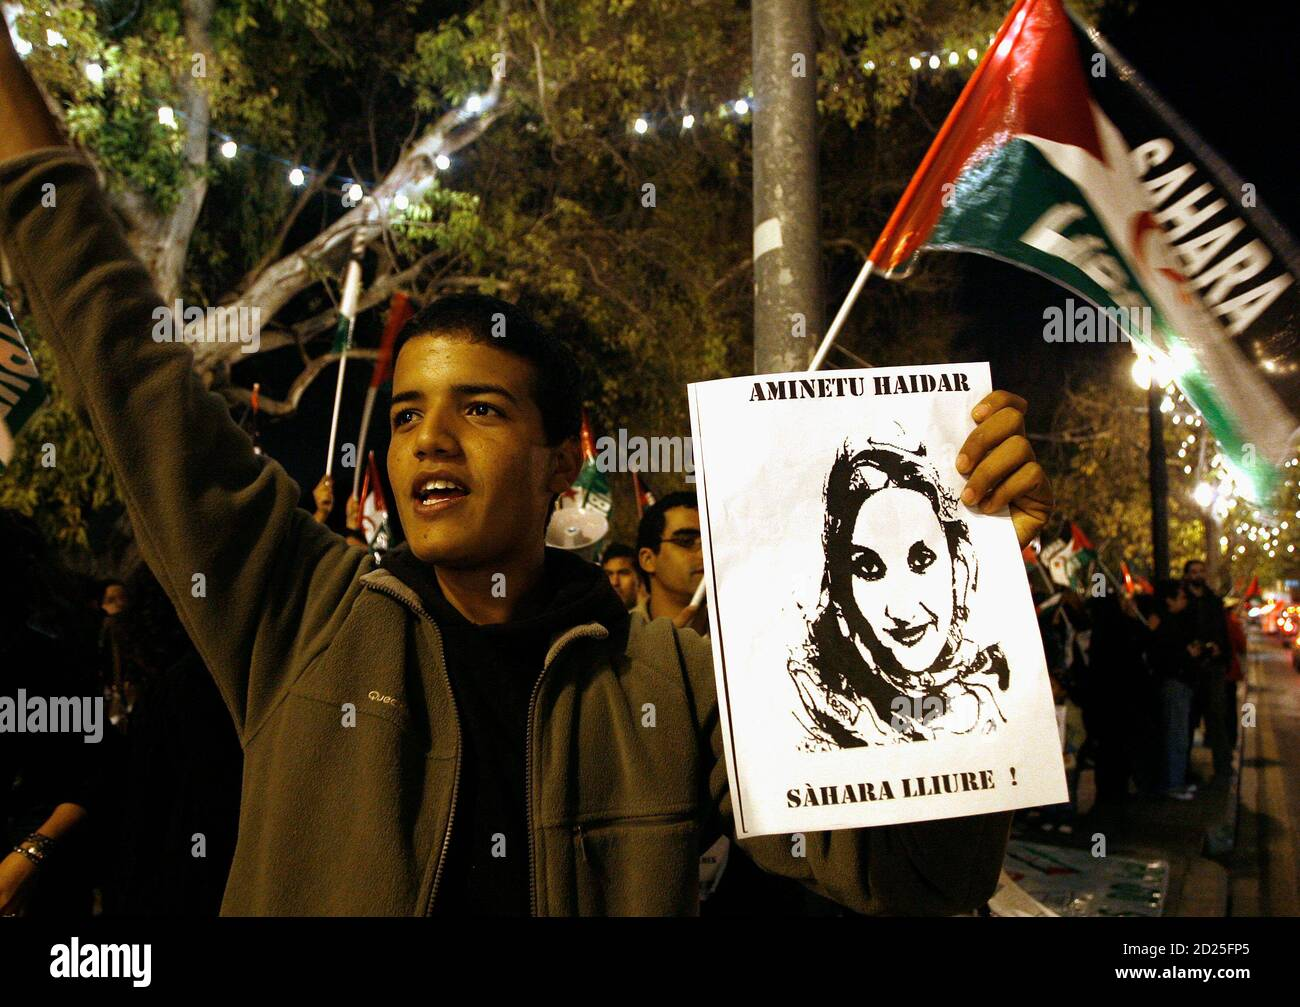 A demonstrator holds a picture of Western Sahara independence campaigner Aminatou Haidar during a protest in Valencia December 10, 2009. Haidar started a hunger strike 23 days ago in protest at being expelled from her desert homeland. She has been at Lanzarote airport in the Canary Islands refusing food ever since Moroccan authorities put her back on a plane when she returned home to Laayoune after a trip to New York. REUTERS/Heino Kalis (SPAIN CONFLICT POLITICS) Foto de stock